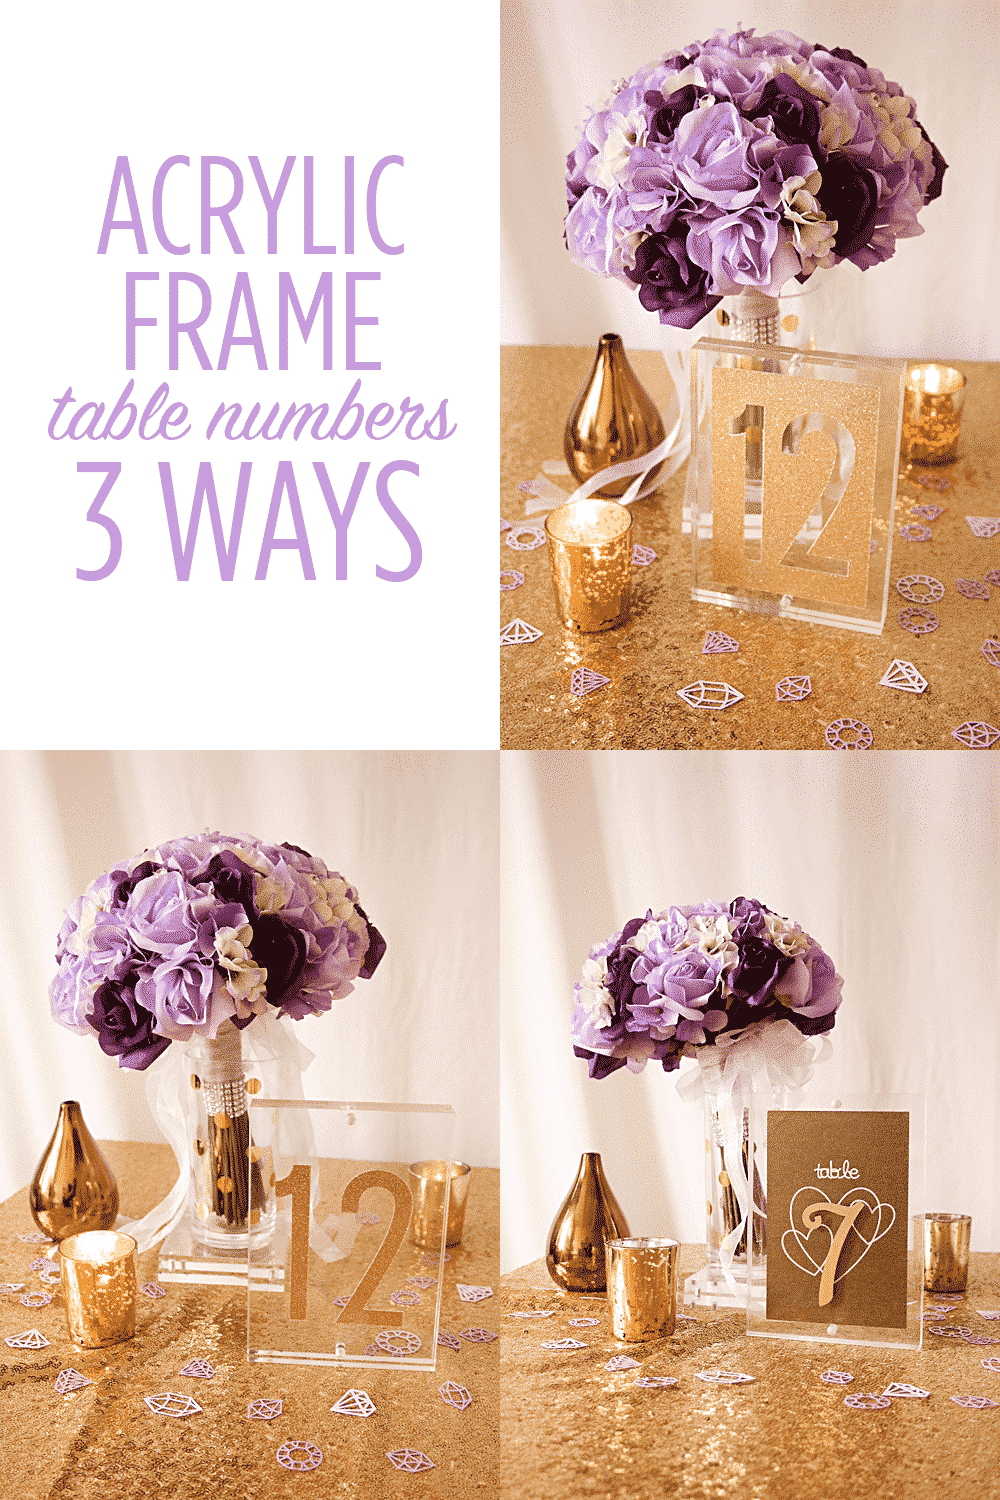 Acrylic Frame Table Numbers, Three Ways with the Cricut Explore Air